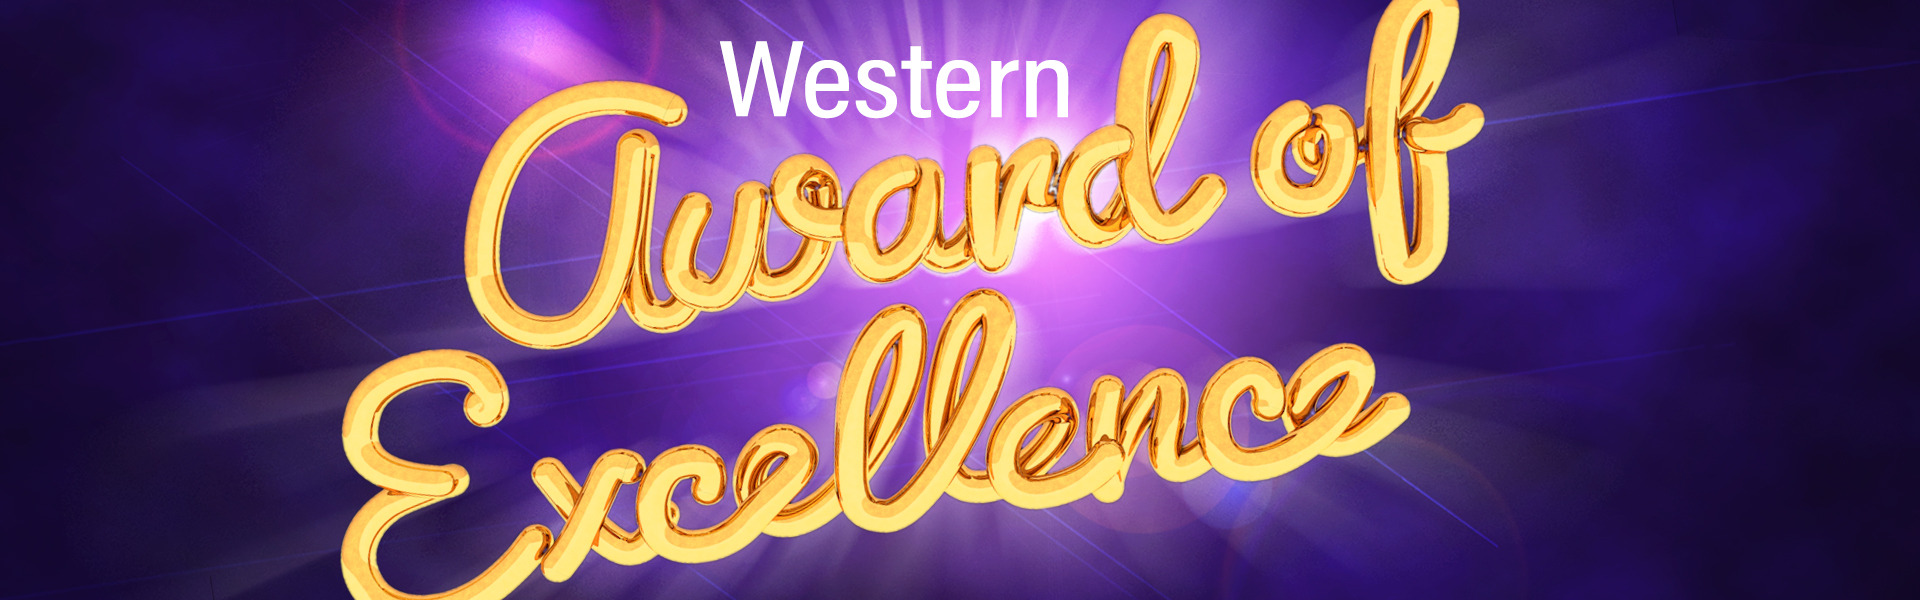 Western Award of Excellence